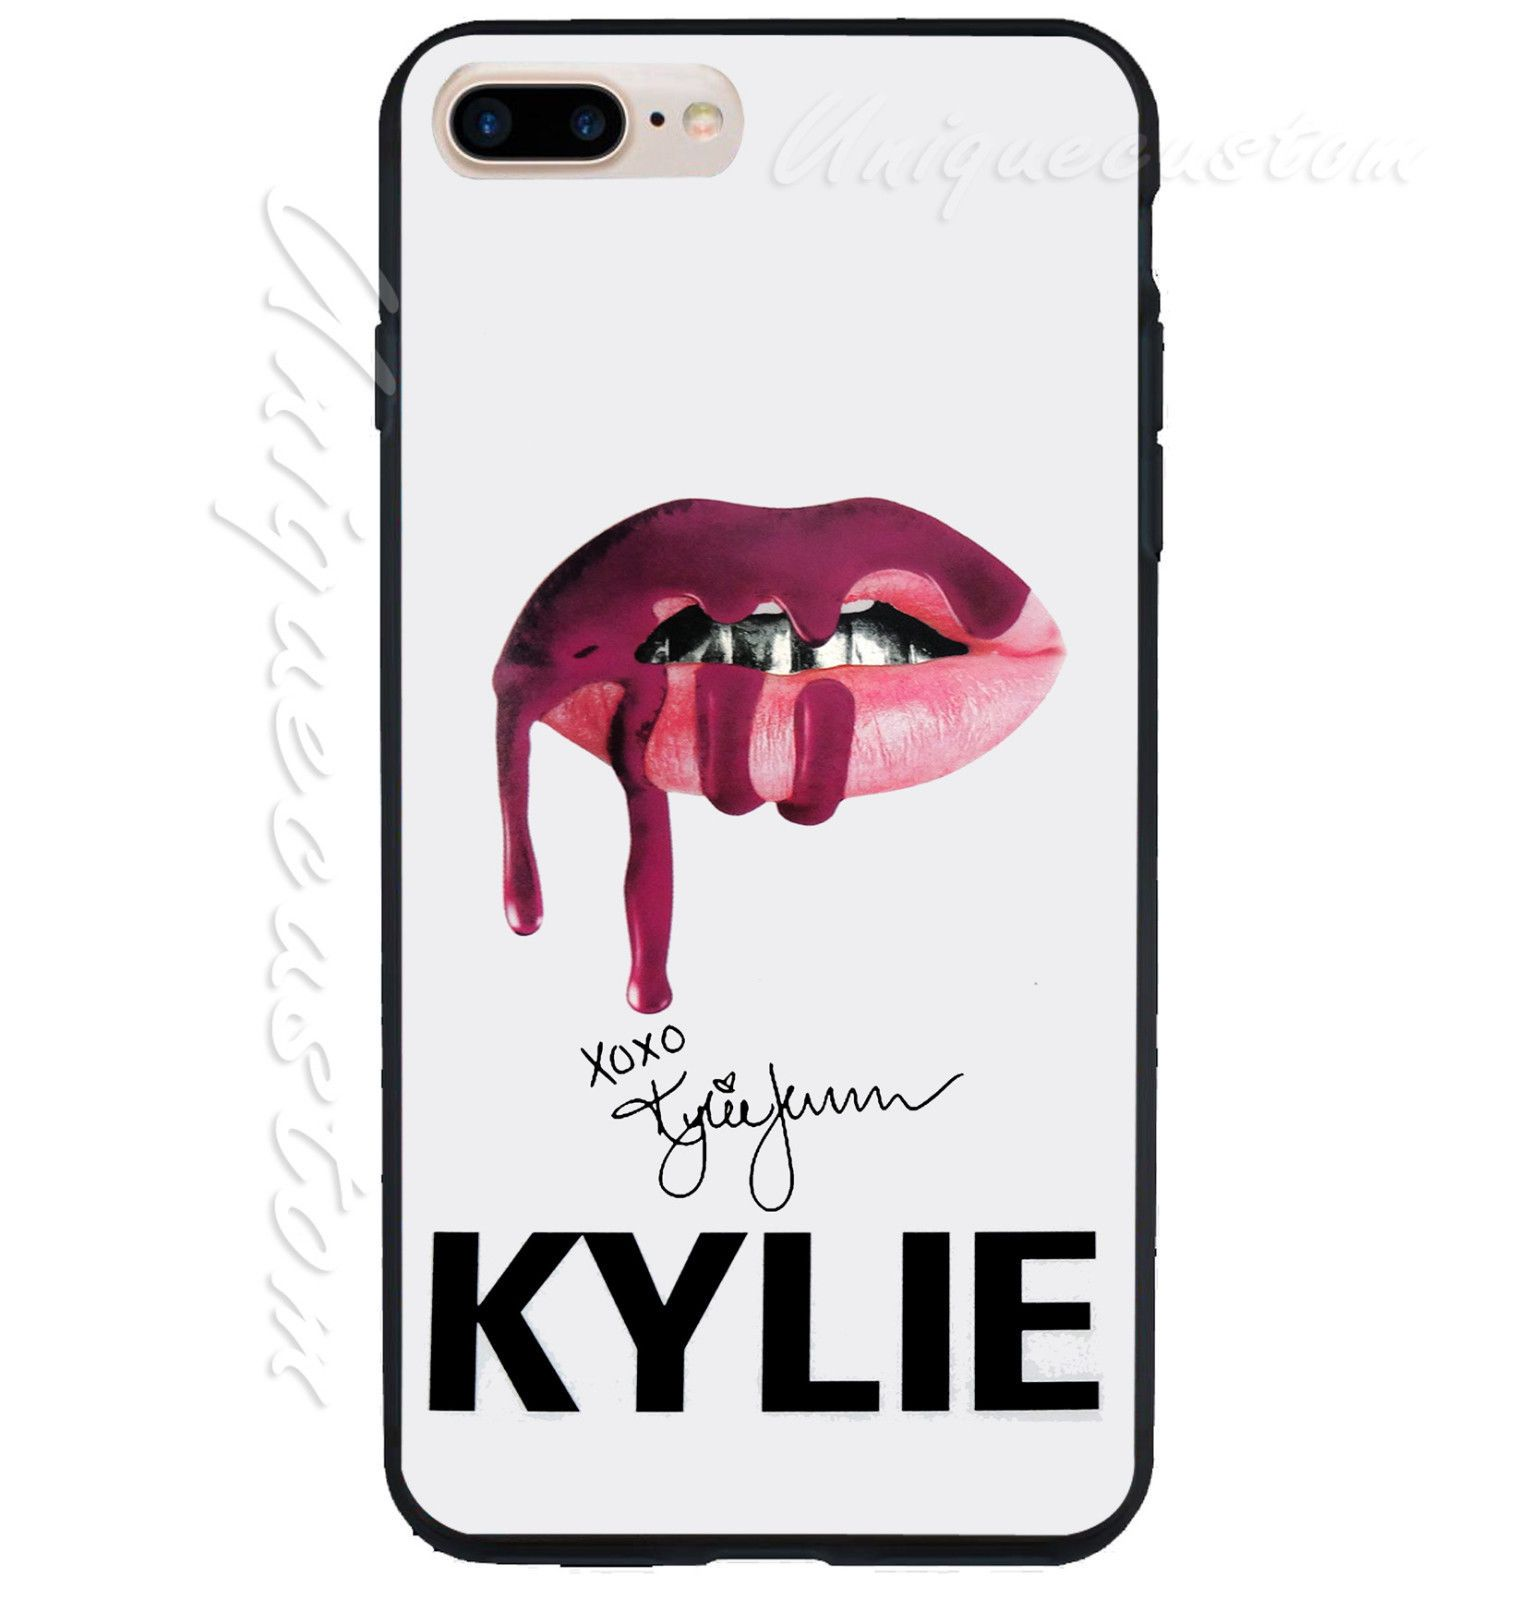 New Hot Rare Design Kylie Jenner Lips Signature Cover Phone Case For iPhone  6/6s